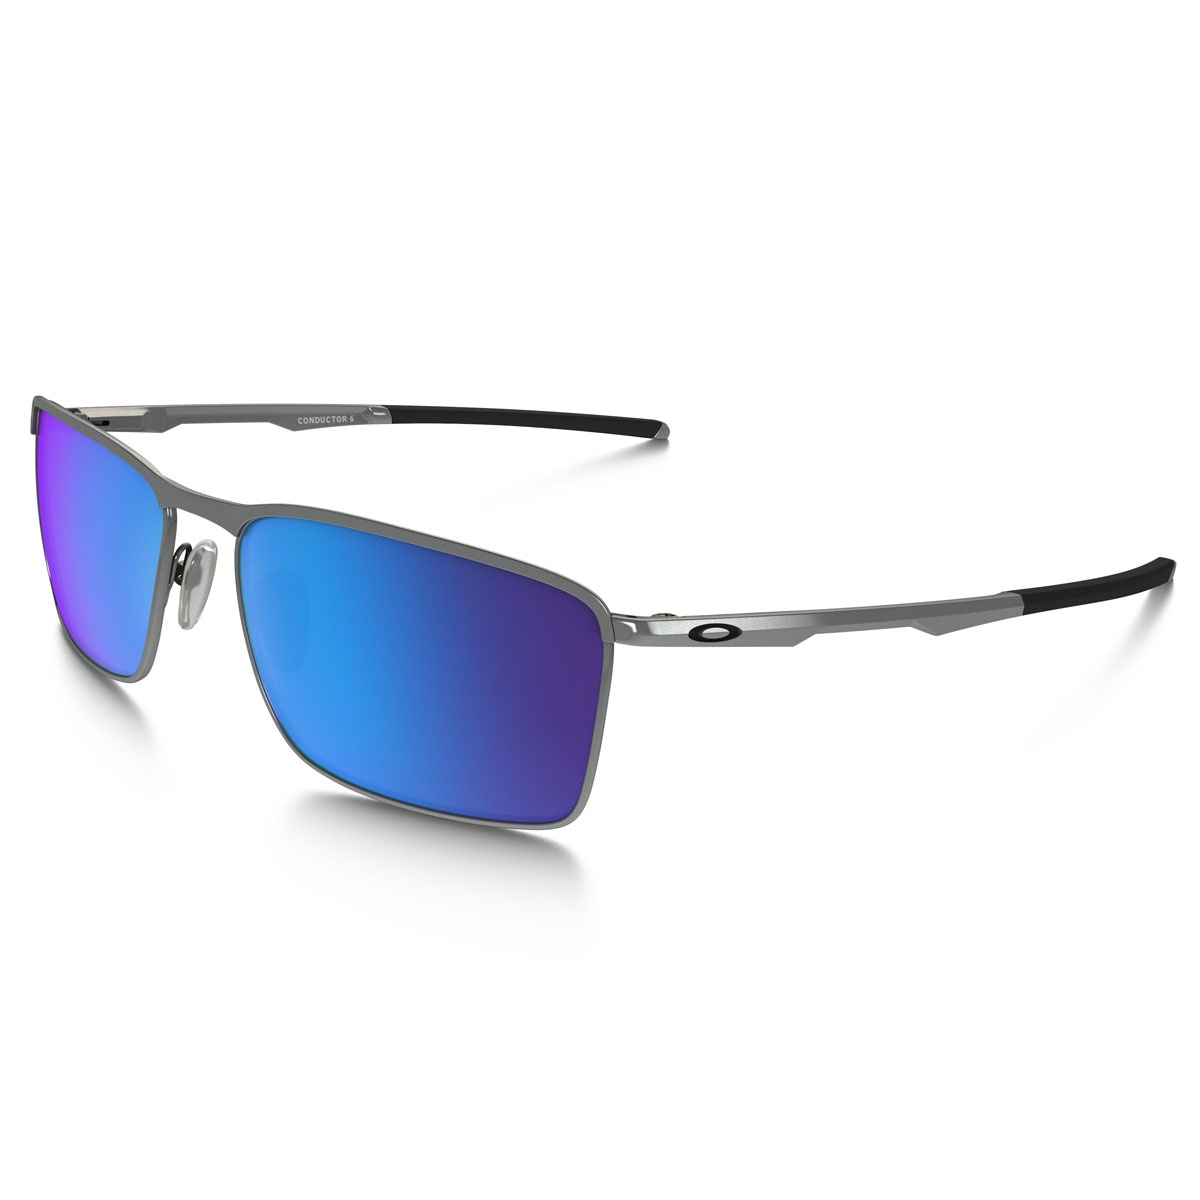 66ef38b648 good oakley polarized conductor 6 9318a 247de  discount image of oakley  conductor 6 sunglasses lead frame sapphire iridium lens 08386 68bc1